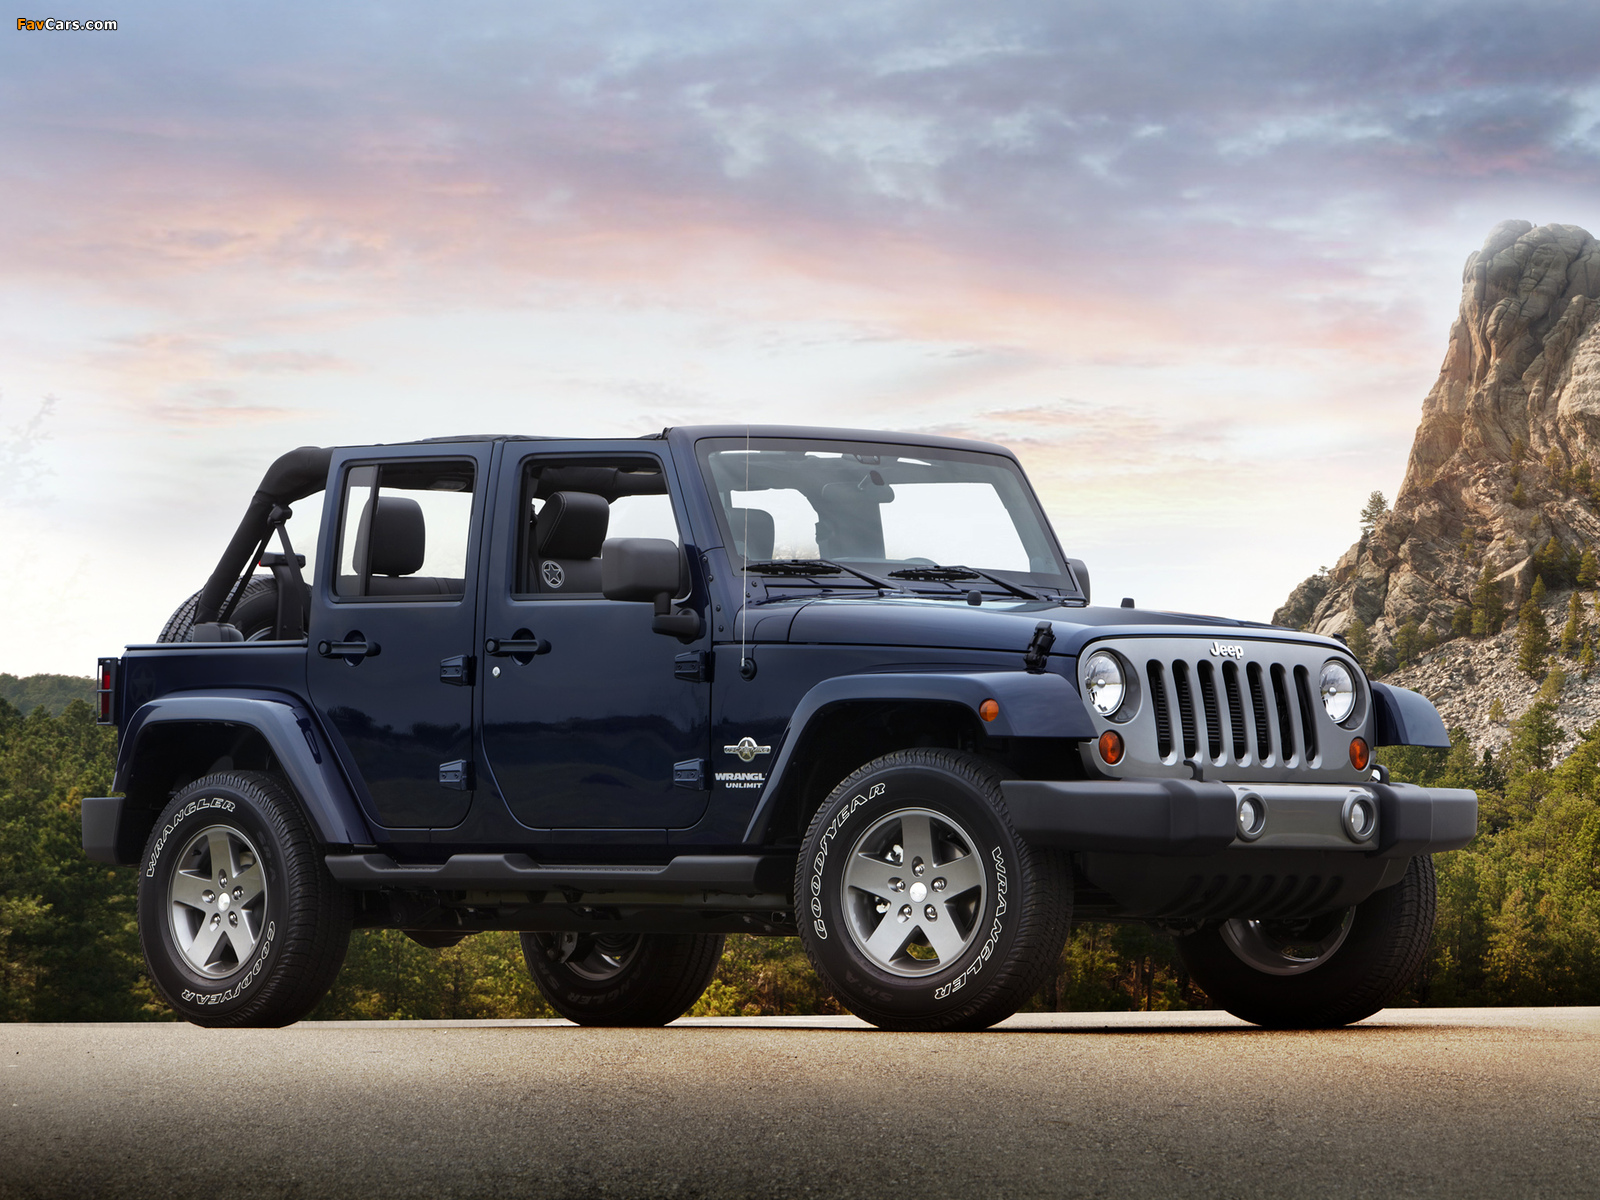 Jeep Wrangler Unlimited Freedom (JK) 2012 pictures (1600 x 1200)